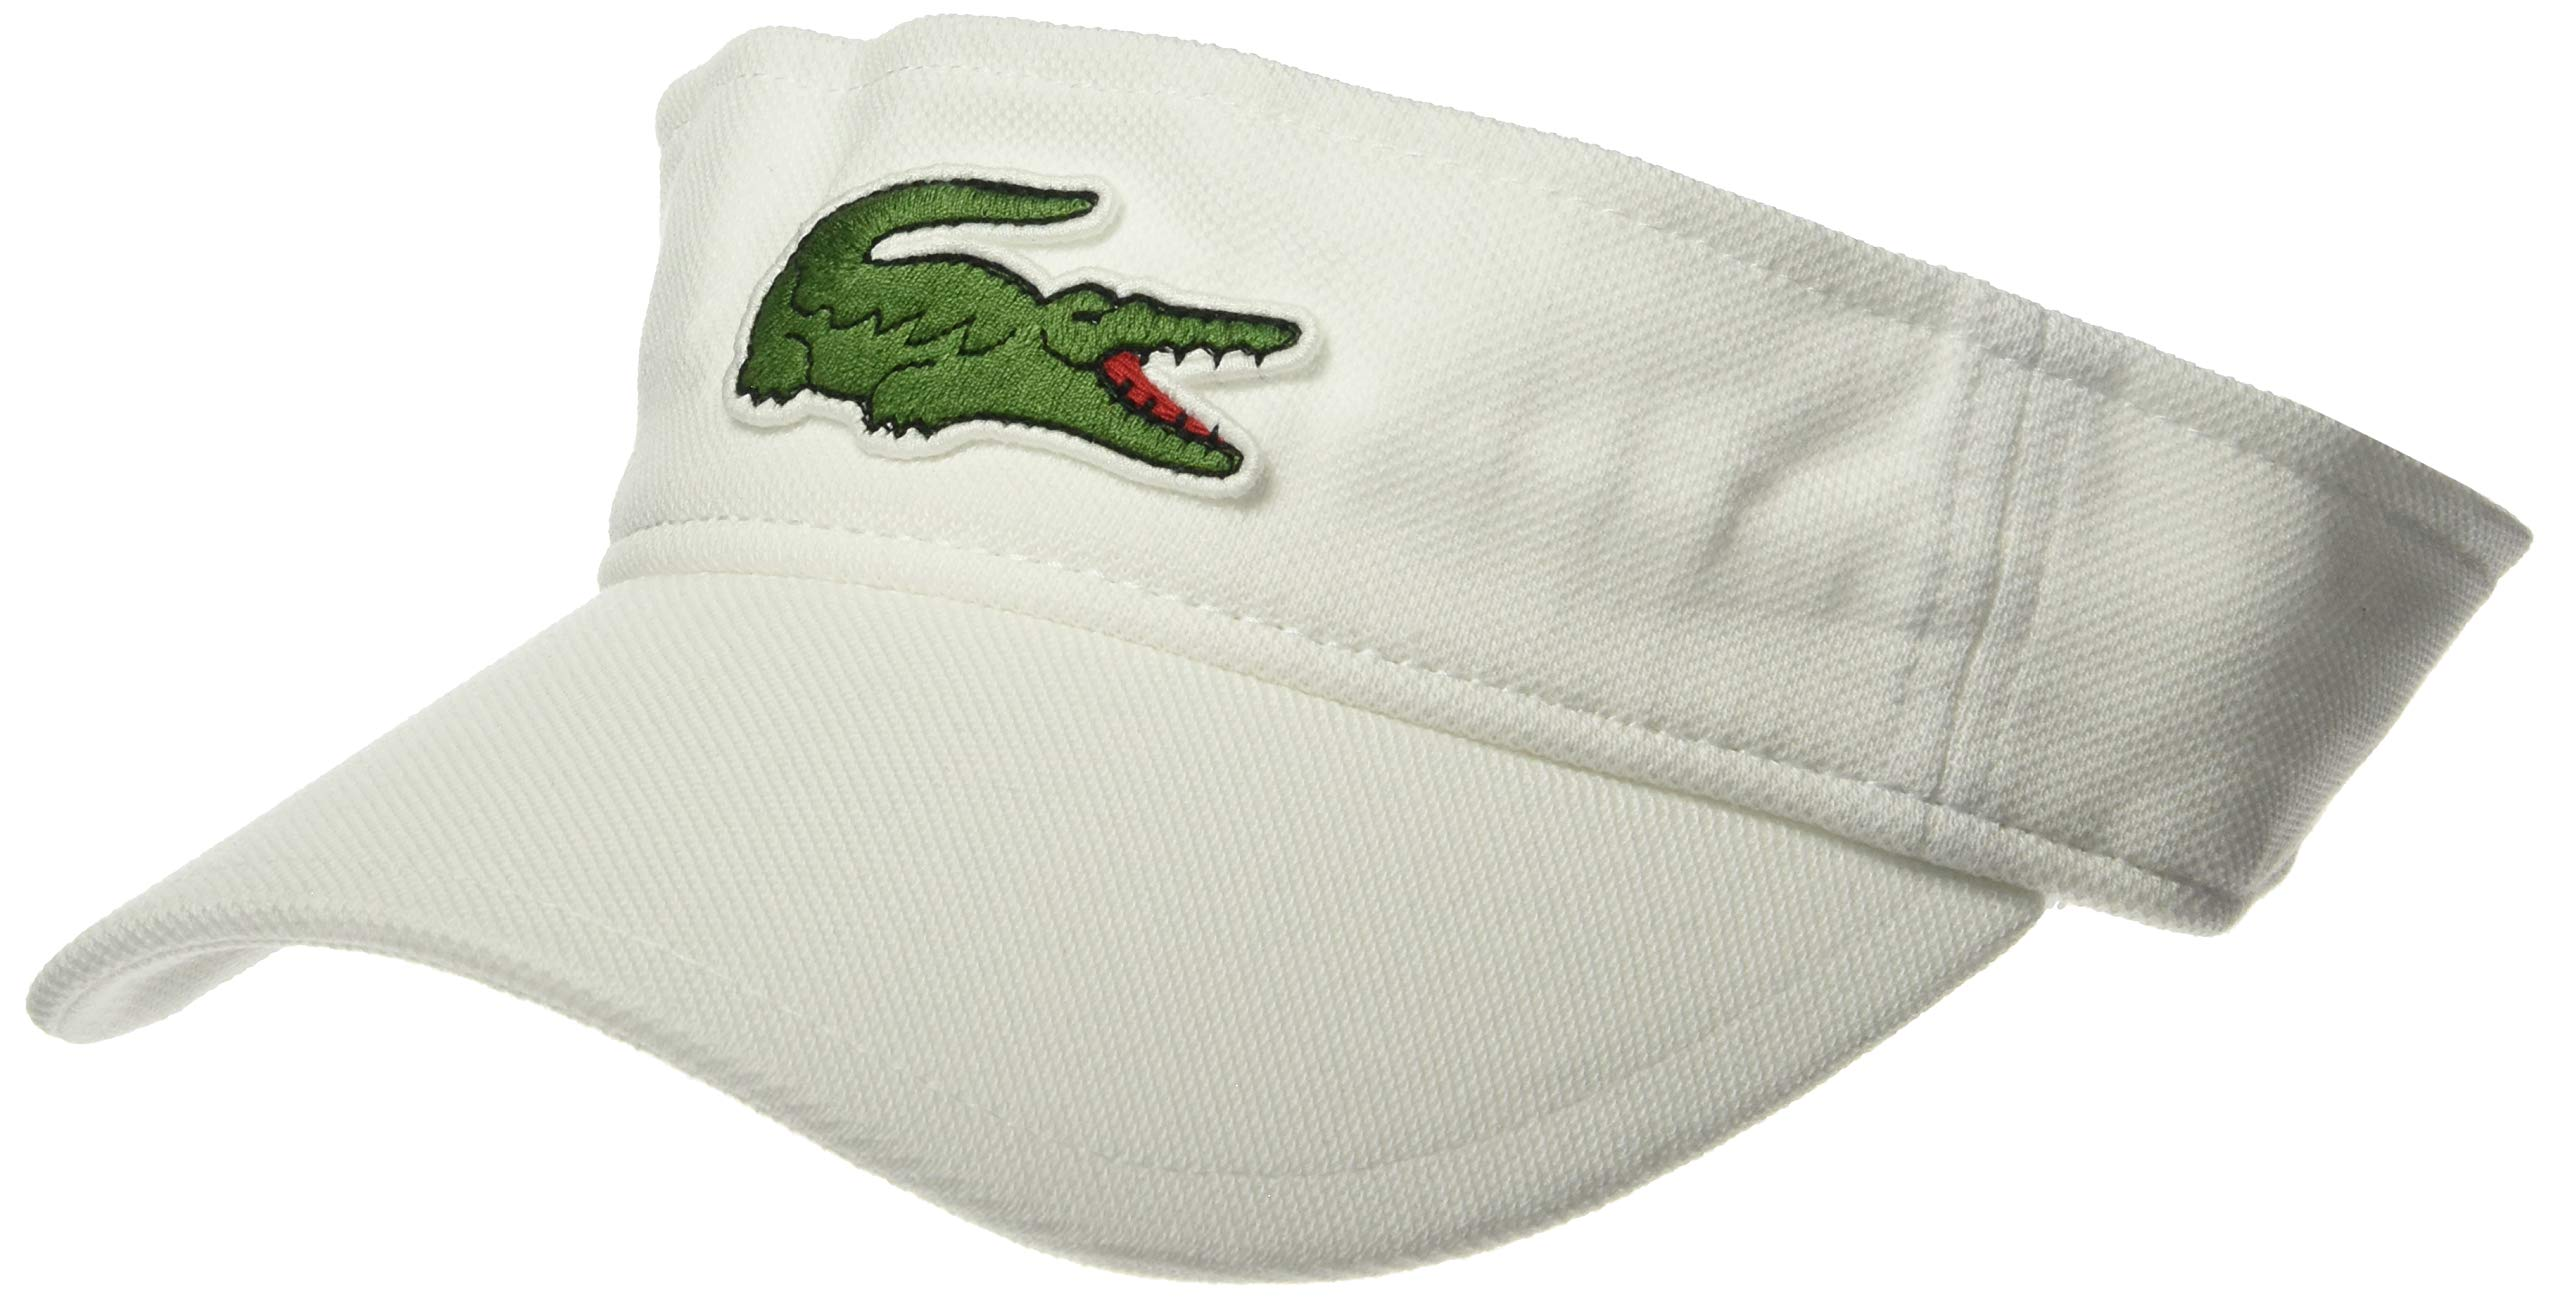 Lacoste Men's Sport Miami Open Edition Visor, White, M/L by Lacoste